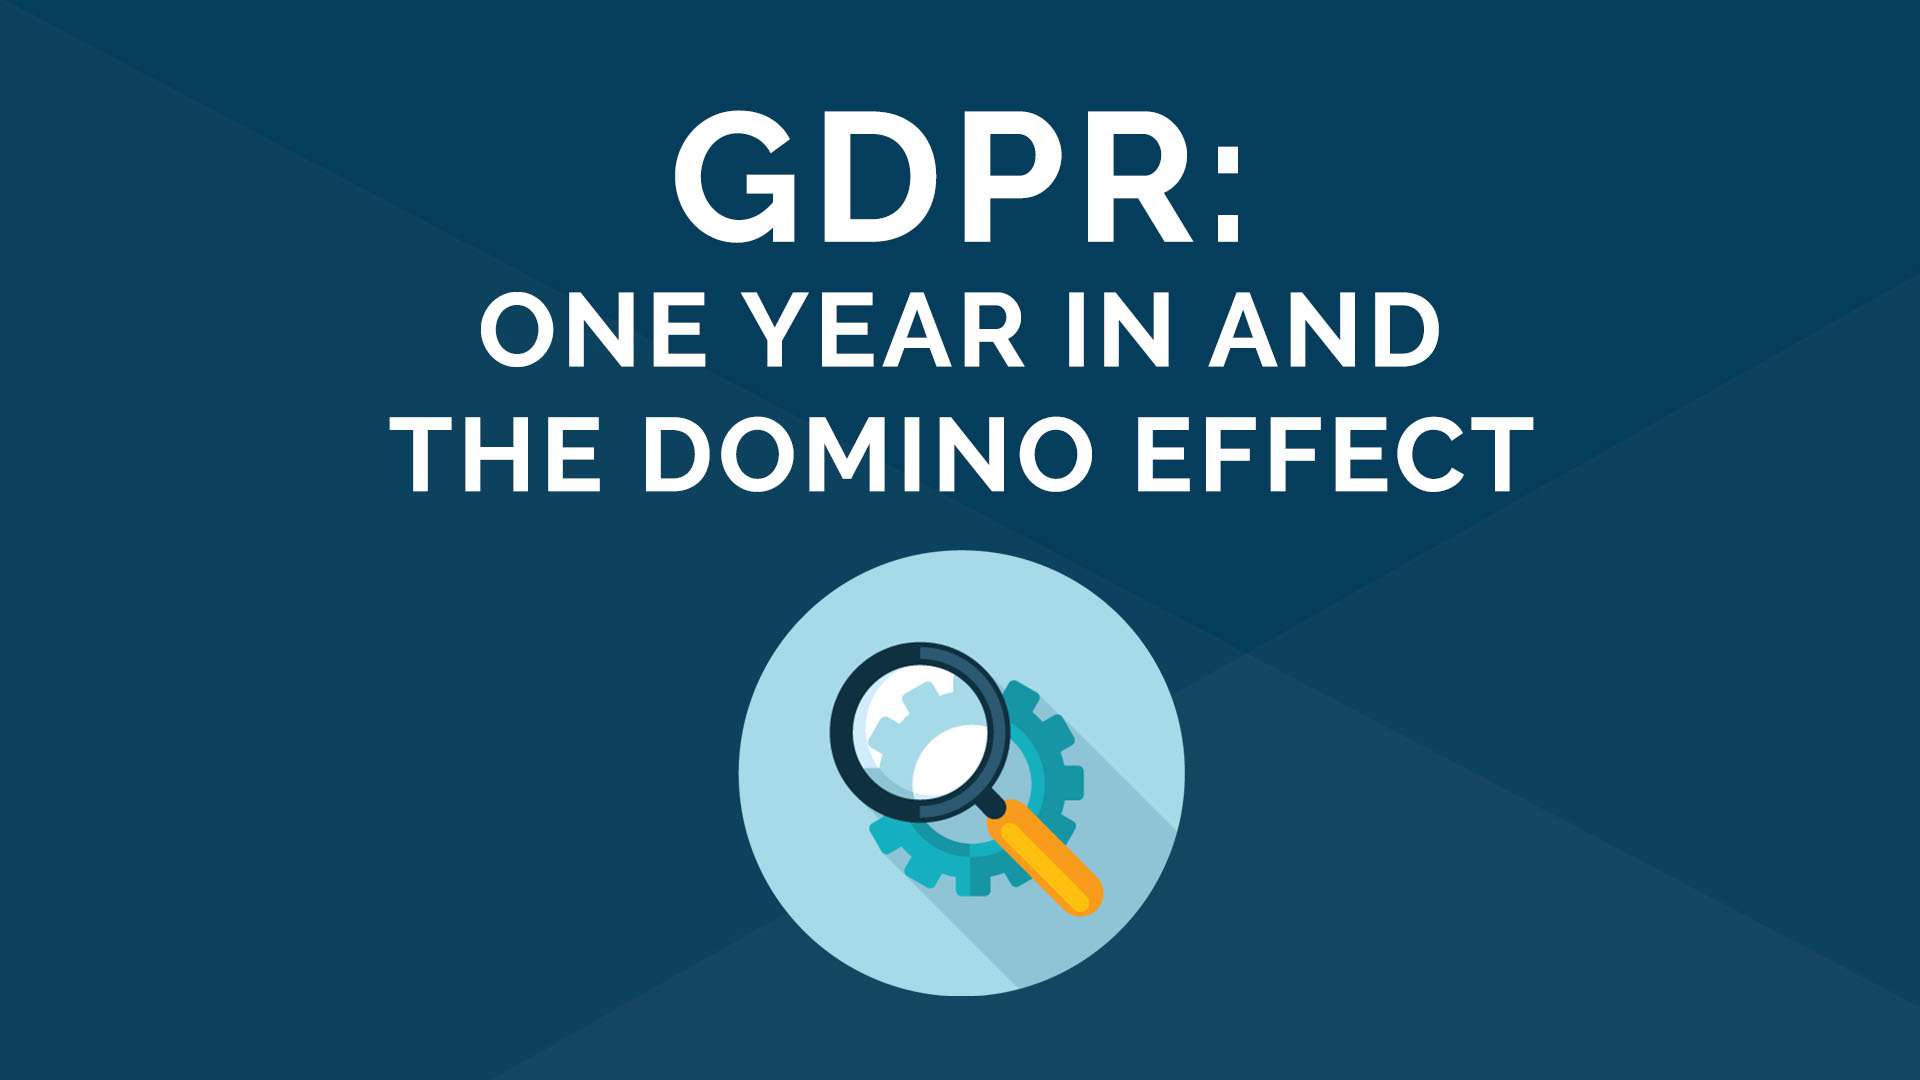 GDPR - One Year In and the Domino Effect